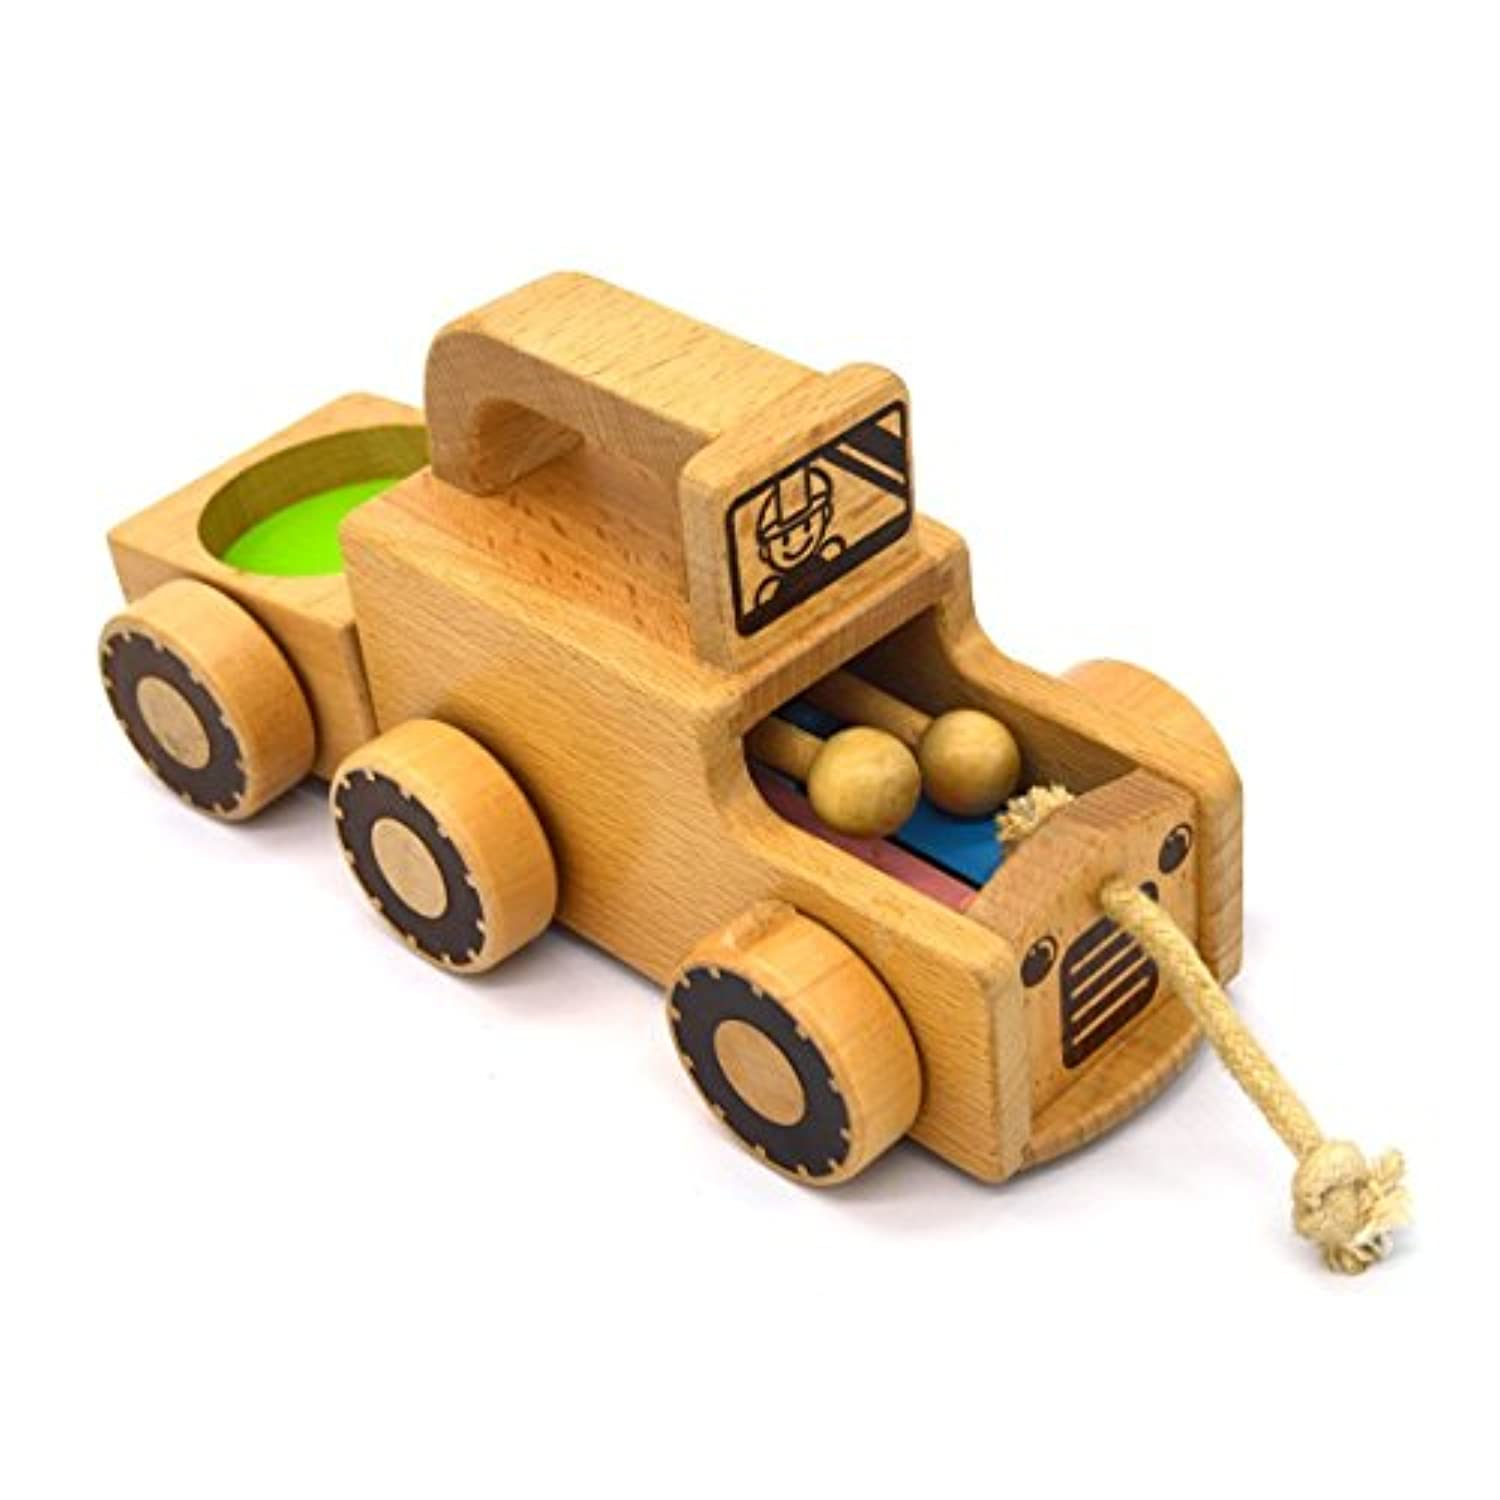 MXtechnic Wooden Pull Musical Toy車子供の教育玩具幼児用ベビーカーfor your sweet baby